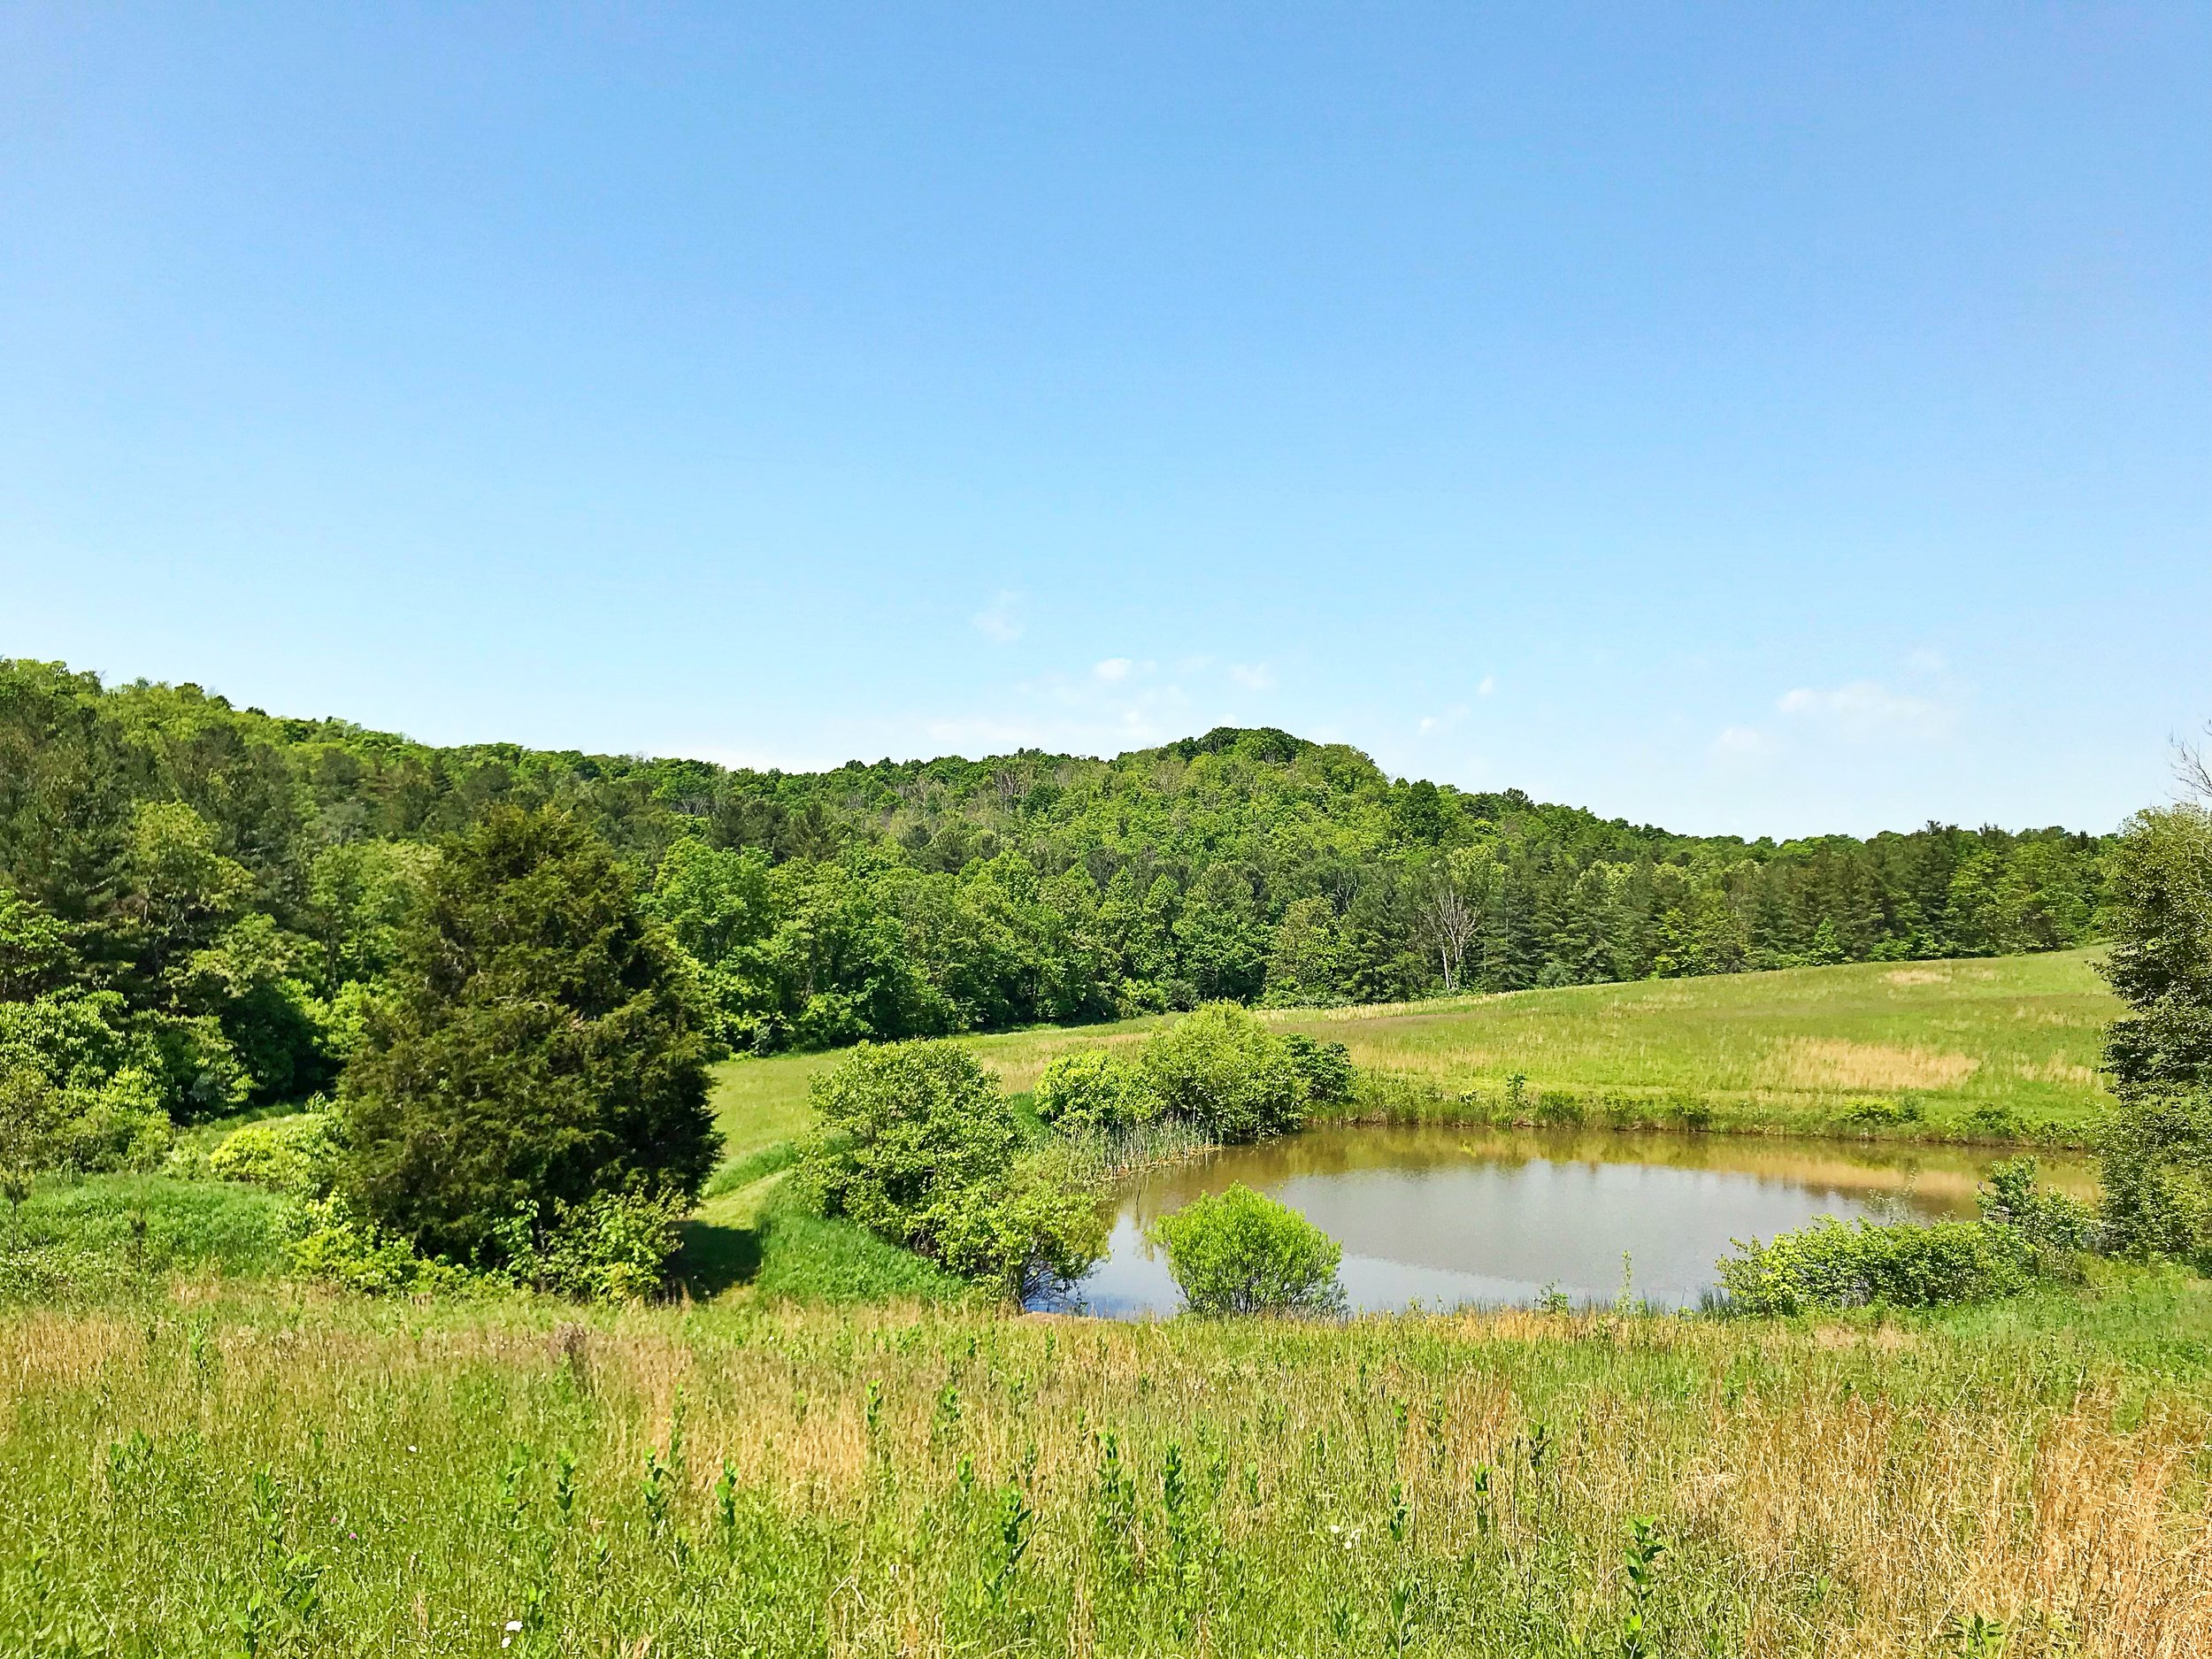 The prairie at SuBAMUH. The large Eastern Red Cedar from which we harvested is standing full and tall to the left of the pond. Photo: Erika Galentin